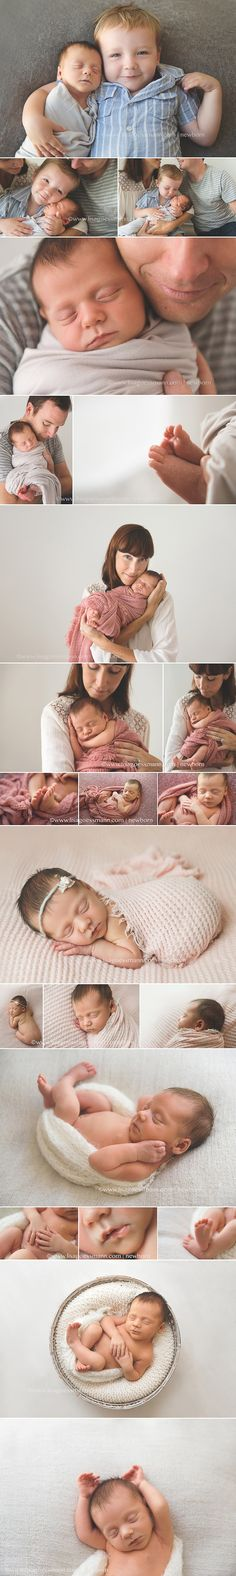 This new family of four recently visited me at my studio with their newest little bundle of joy. Baby Isla was such a doll, sleeping soundly through her whole session. Congratulations to her adoring parents and big brother who only wanted his photo taken if he could hold his sister! LOVE! Enjoy…